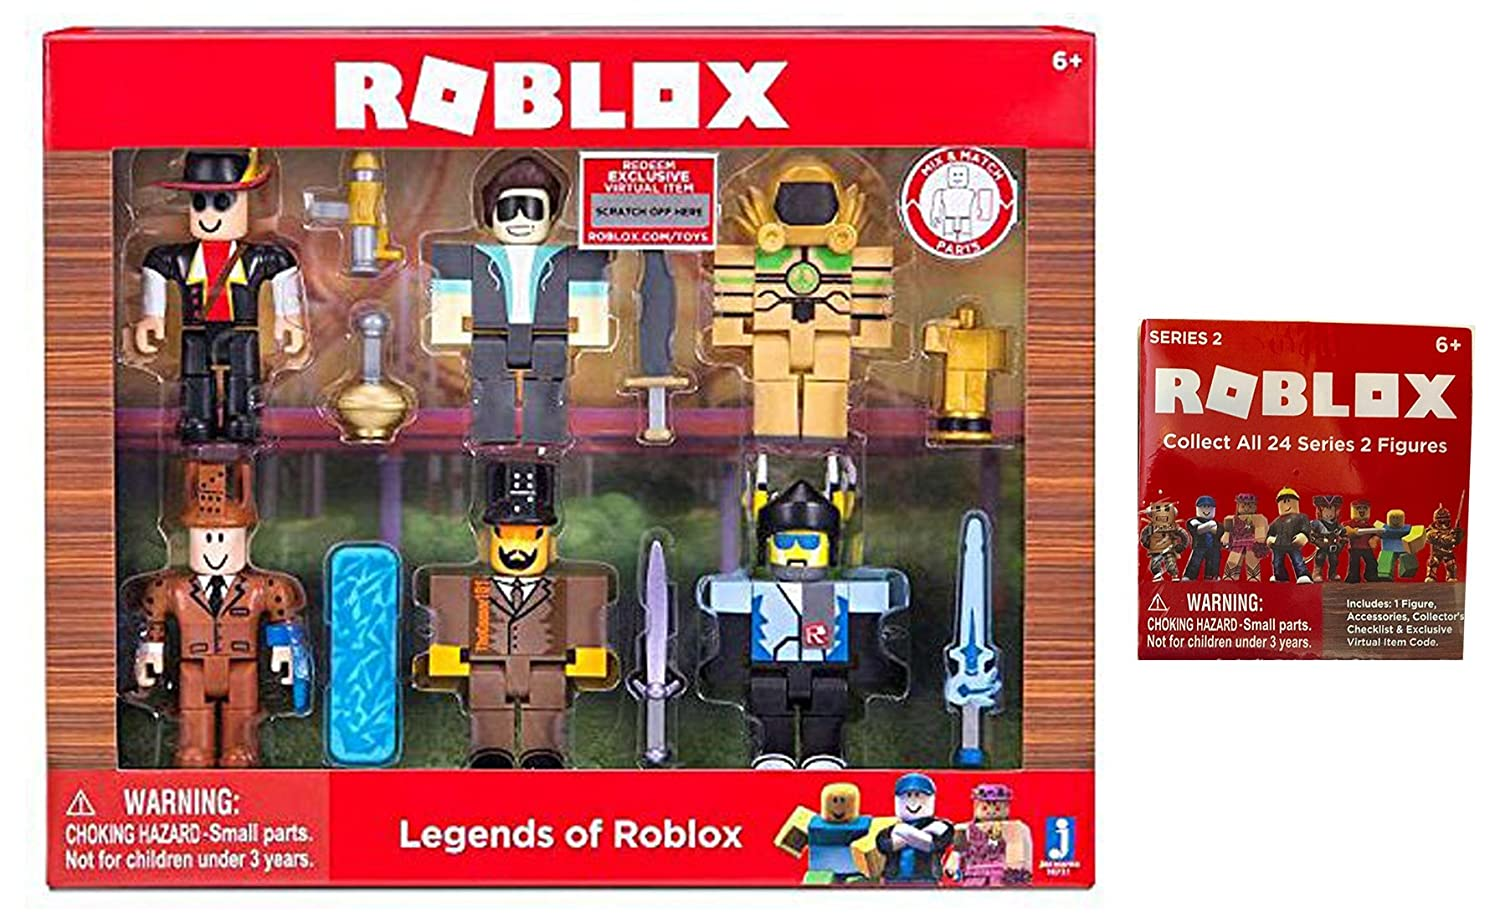 Amazoncom Legend Of Roblox Toy Set Includes Legends Of Roblox